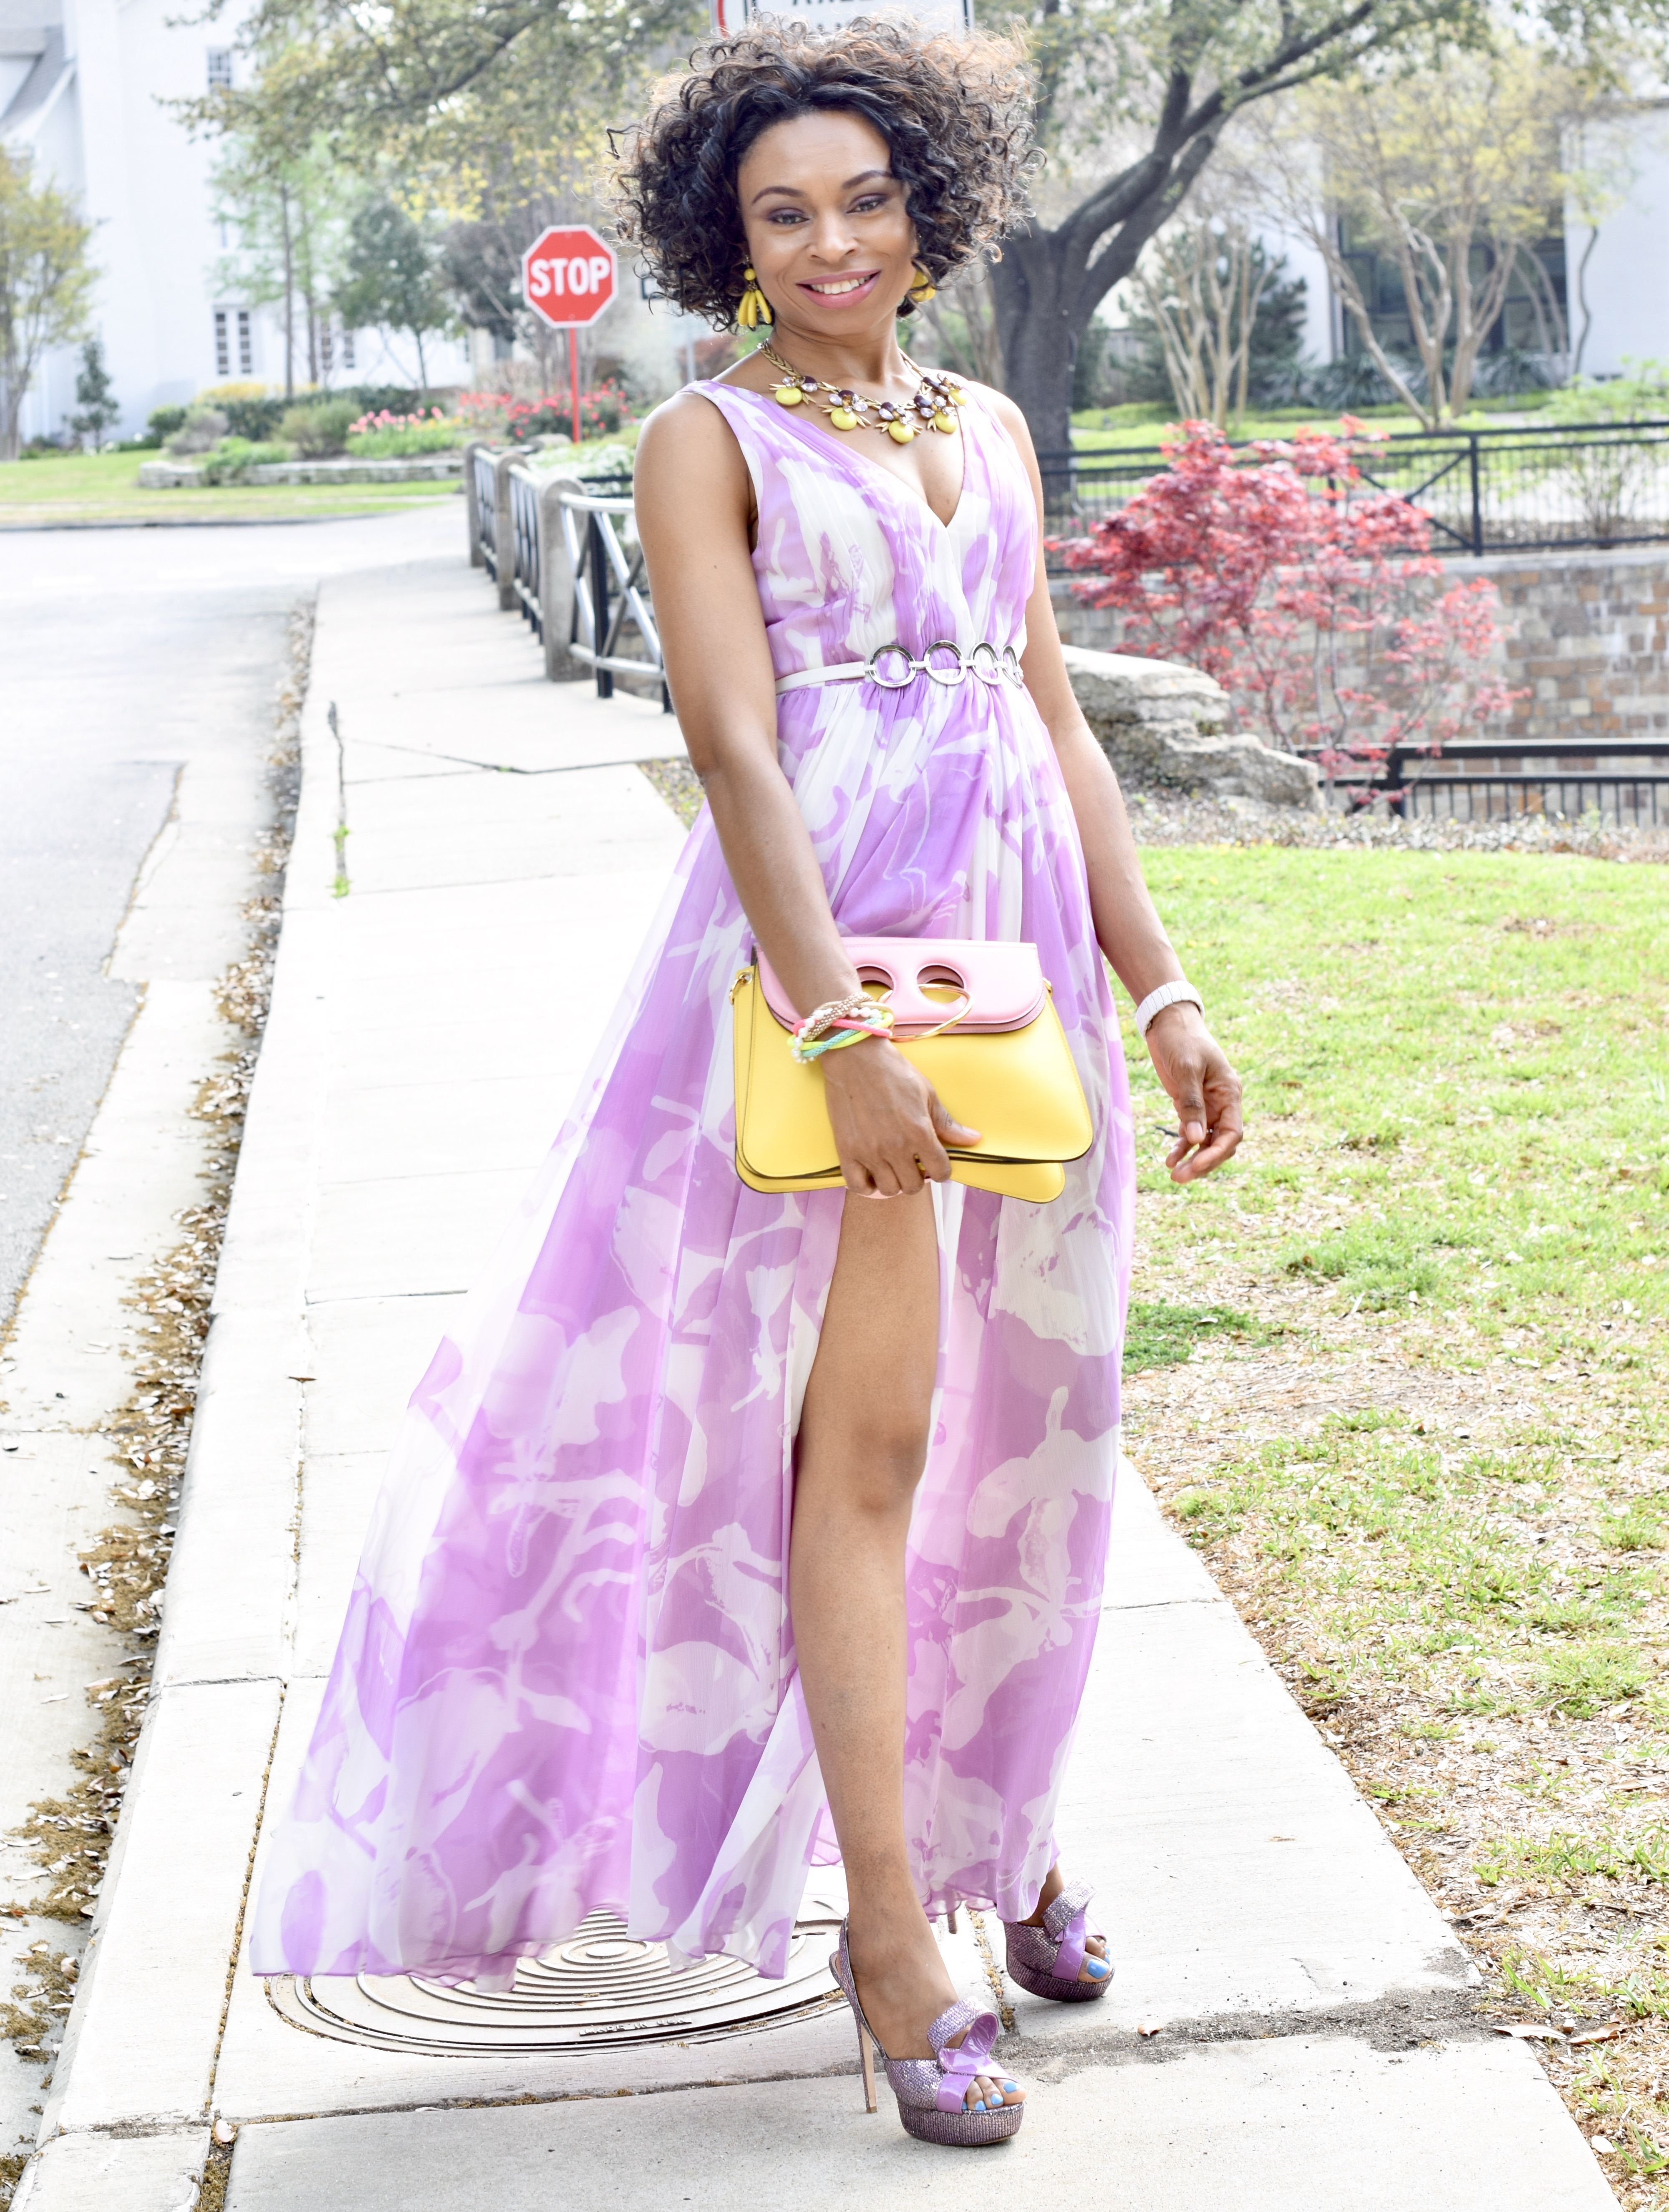 Spring floral dress-tulip orchid printed gown Posted by Vivellefashion